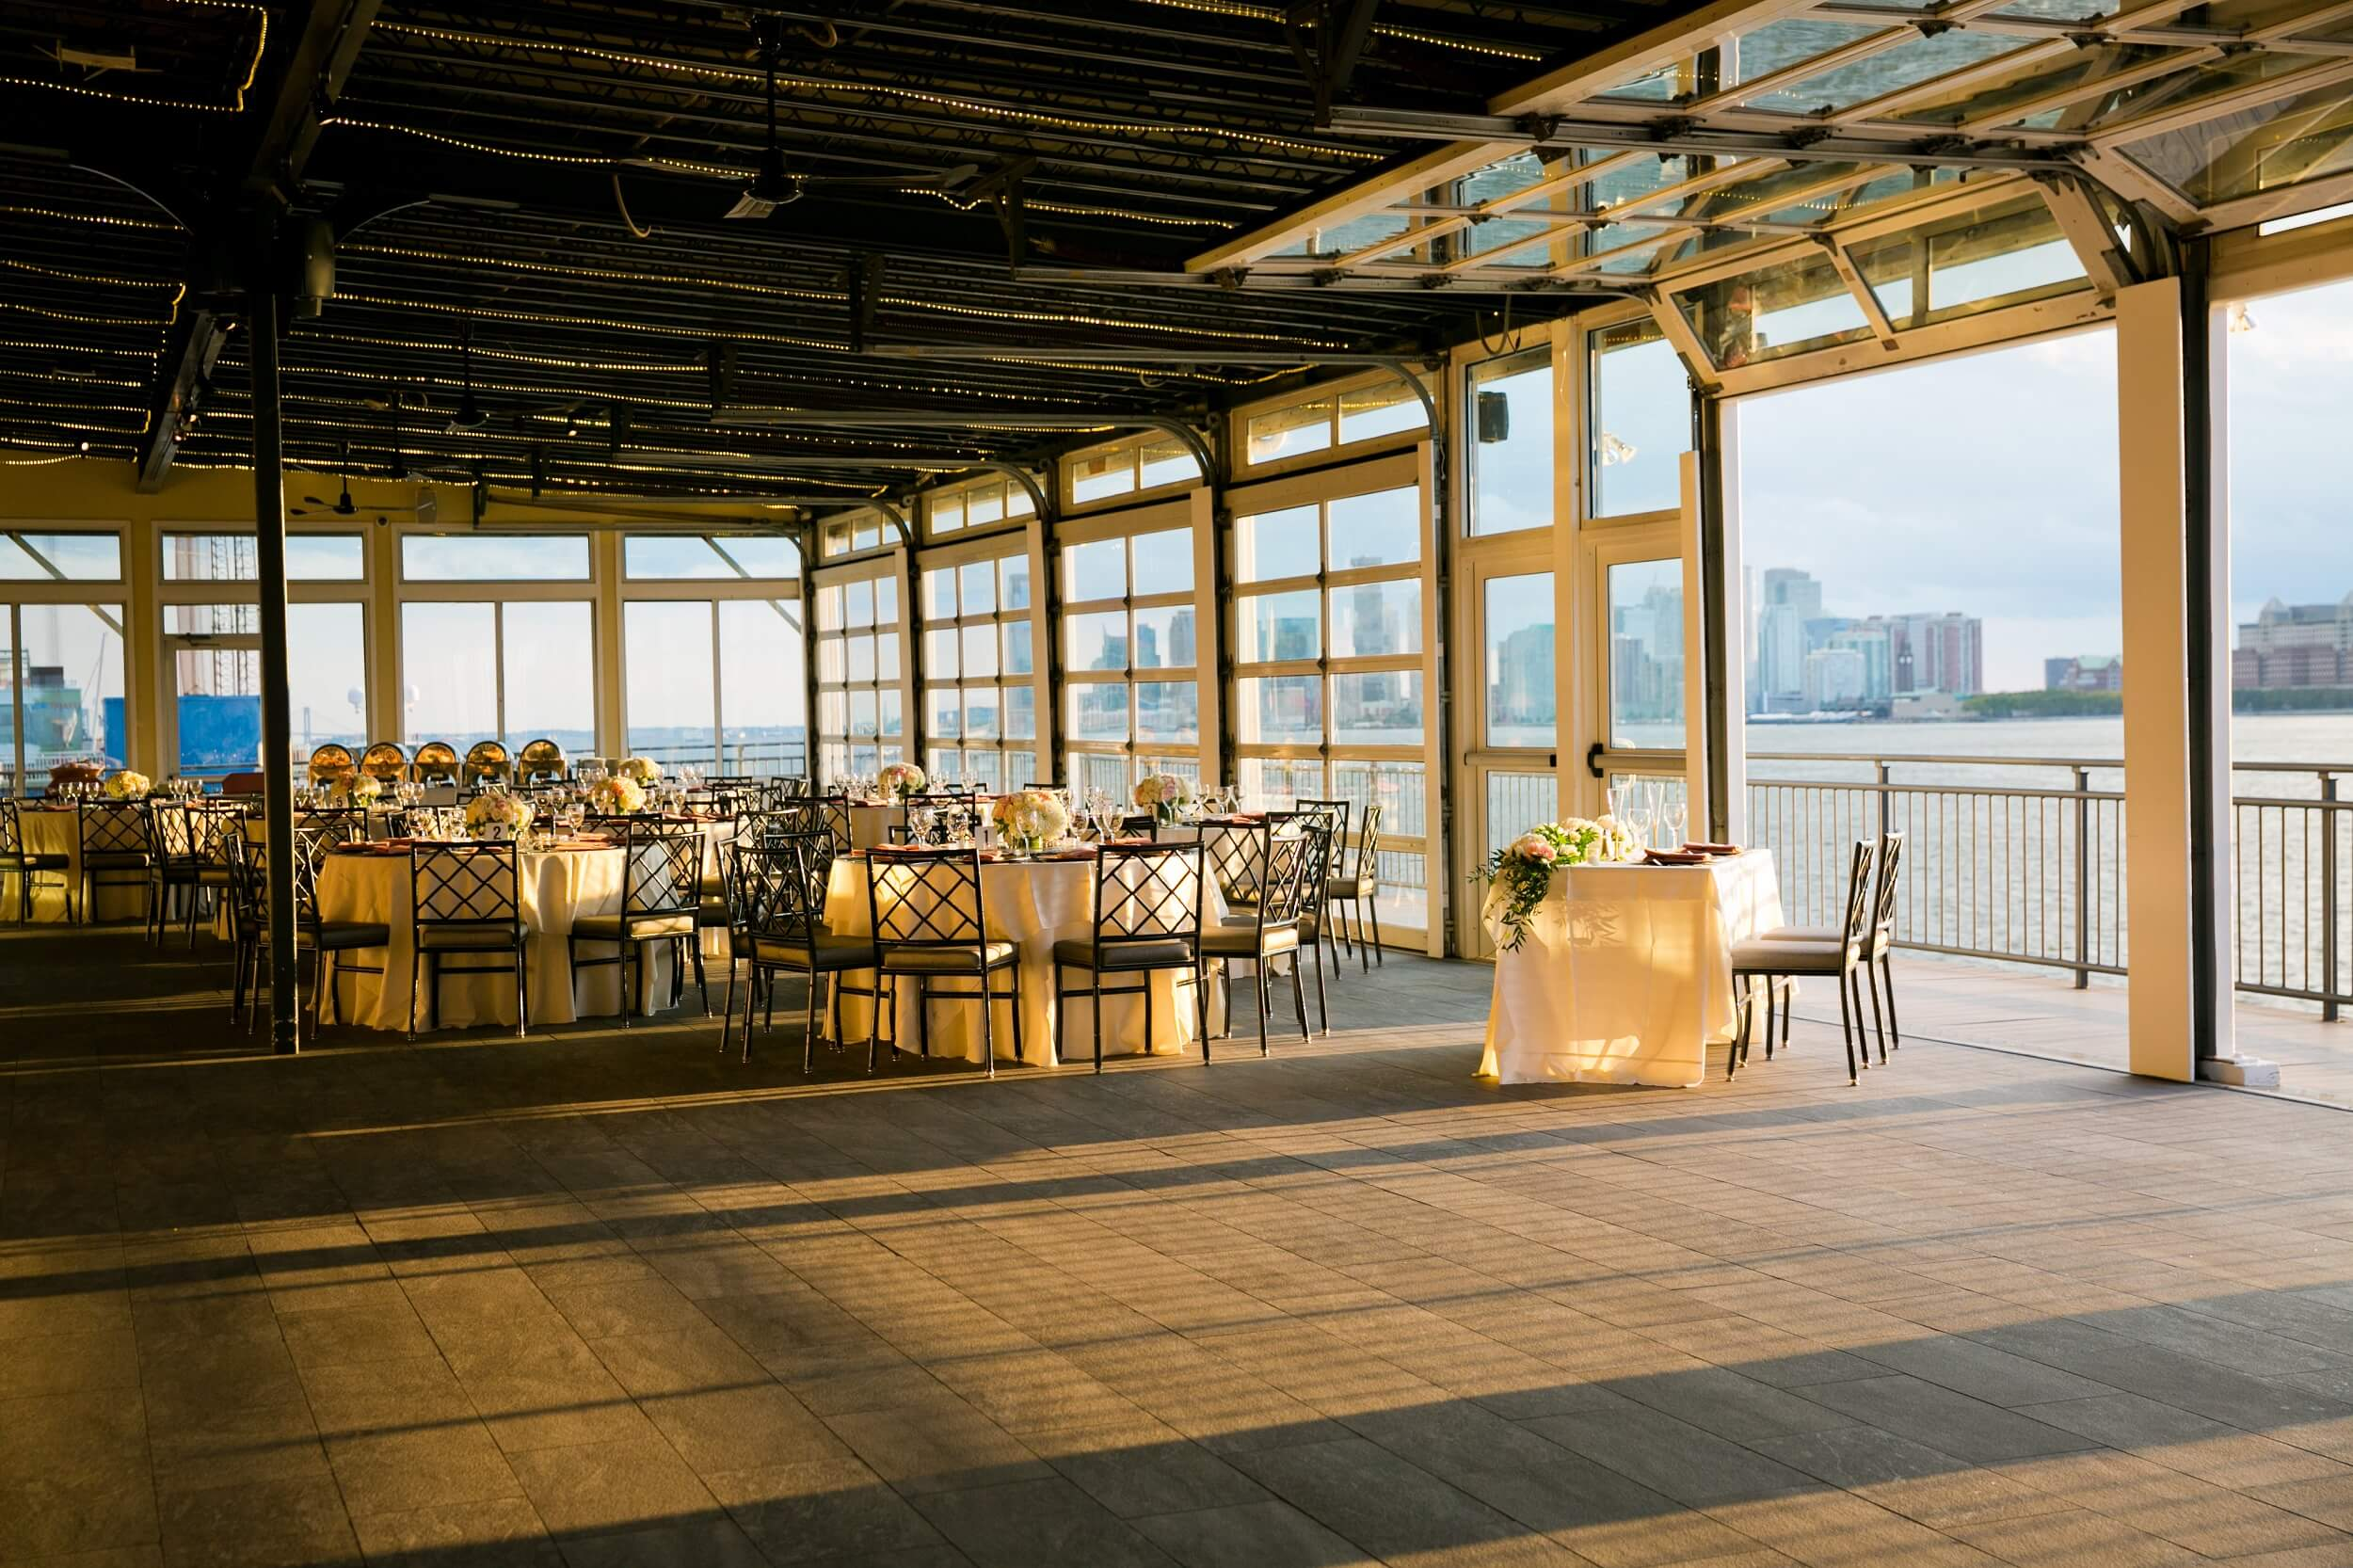 Tables at a wedding reception at Sunset Terrace during golden hour